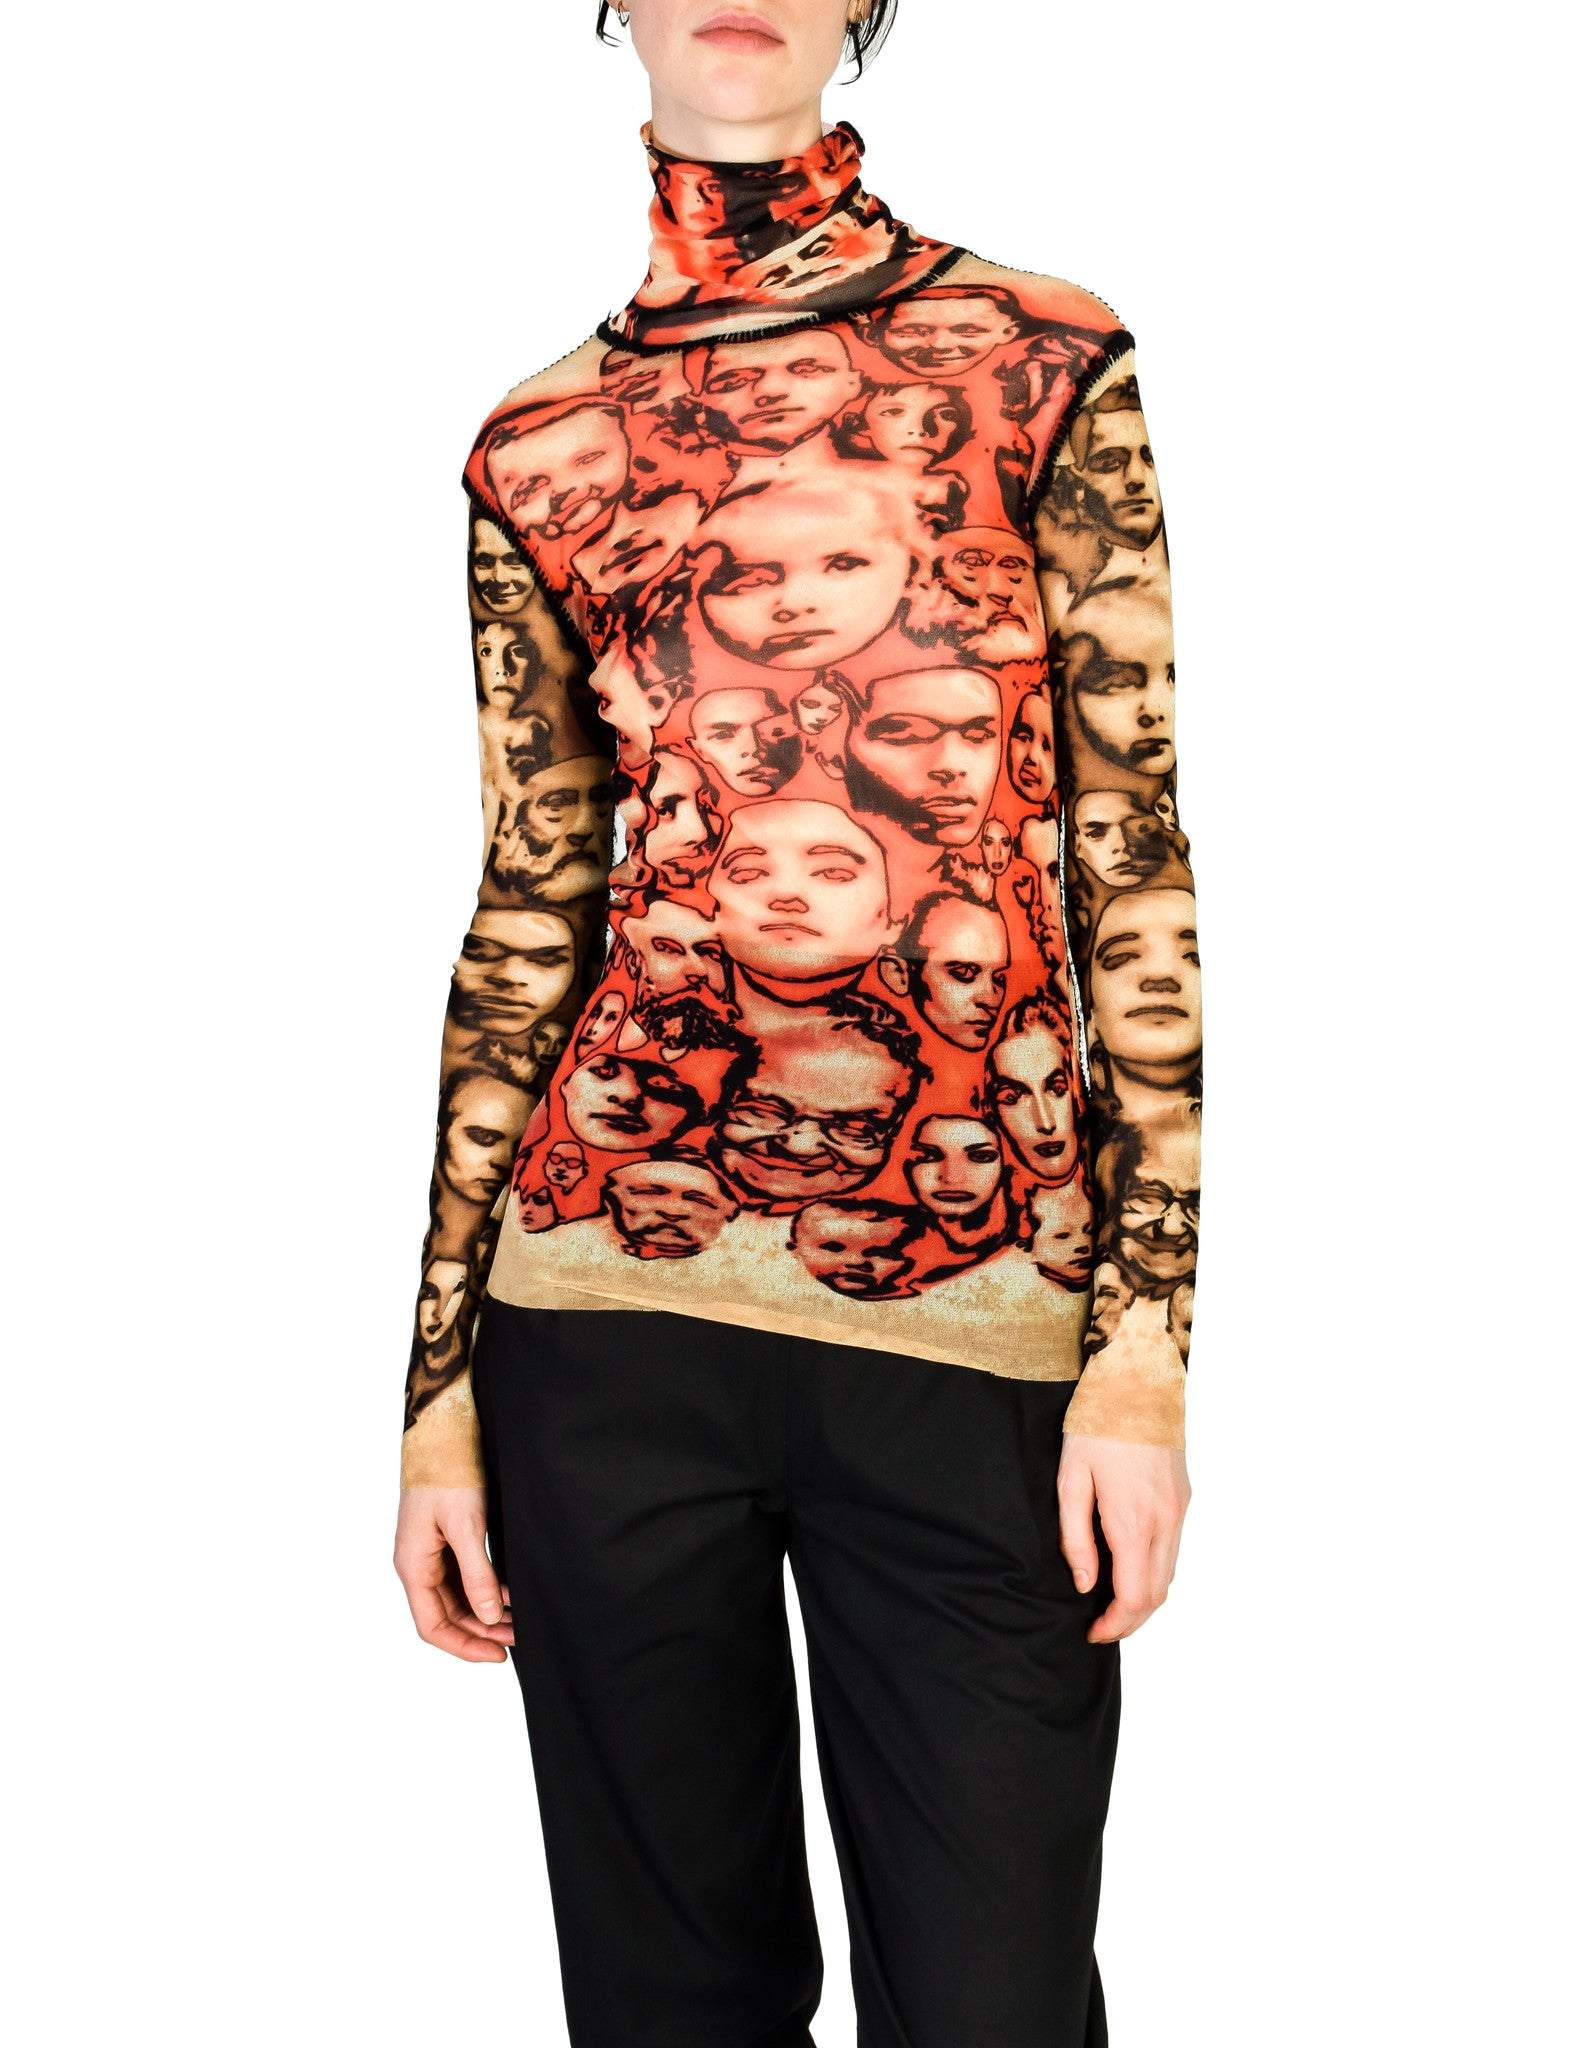 Jean Paul Gaultier Vintage Iconic Sheer Mesh Face Print Turtleneck Shirt Top - Amarcord Vintage Fashion  - 1